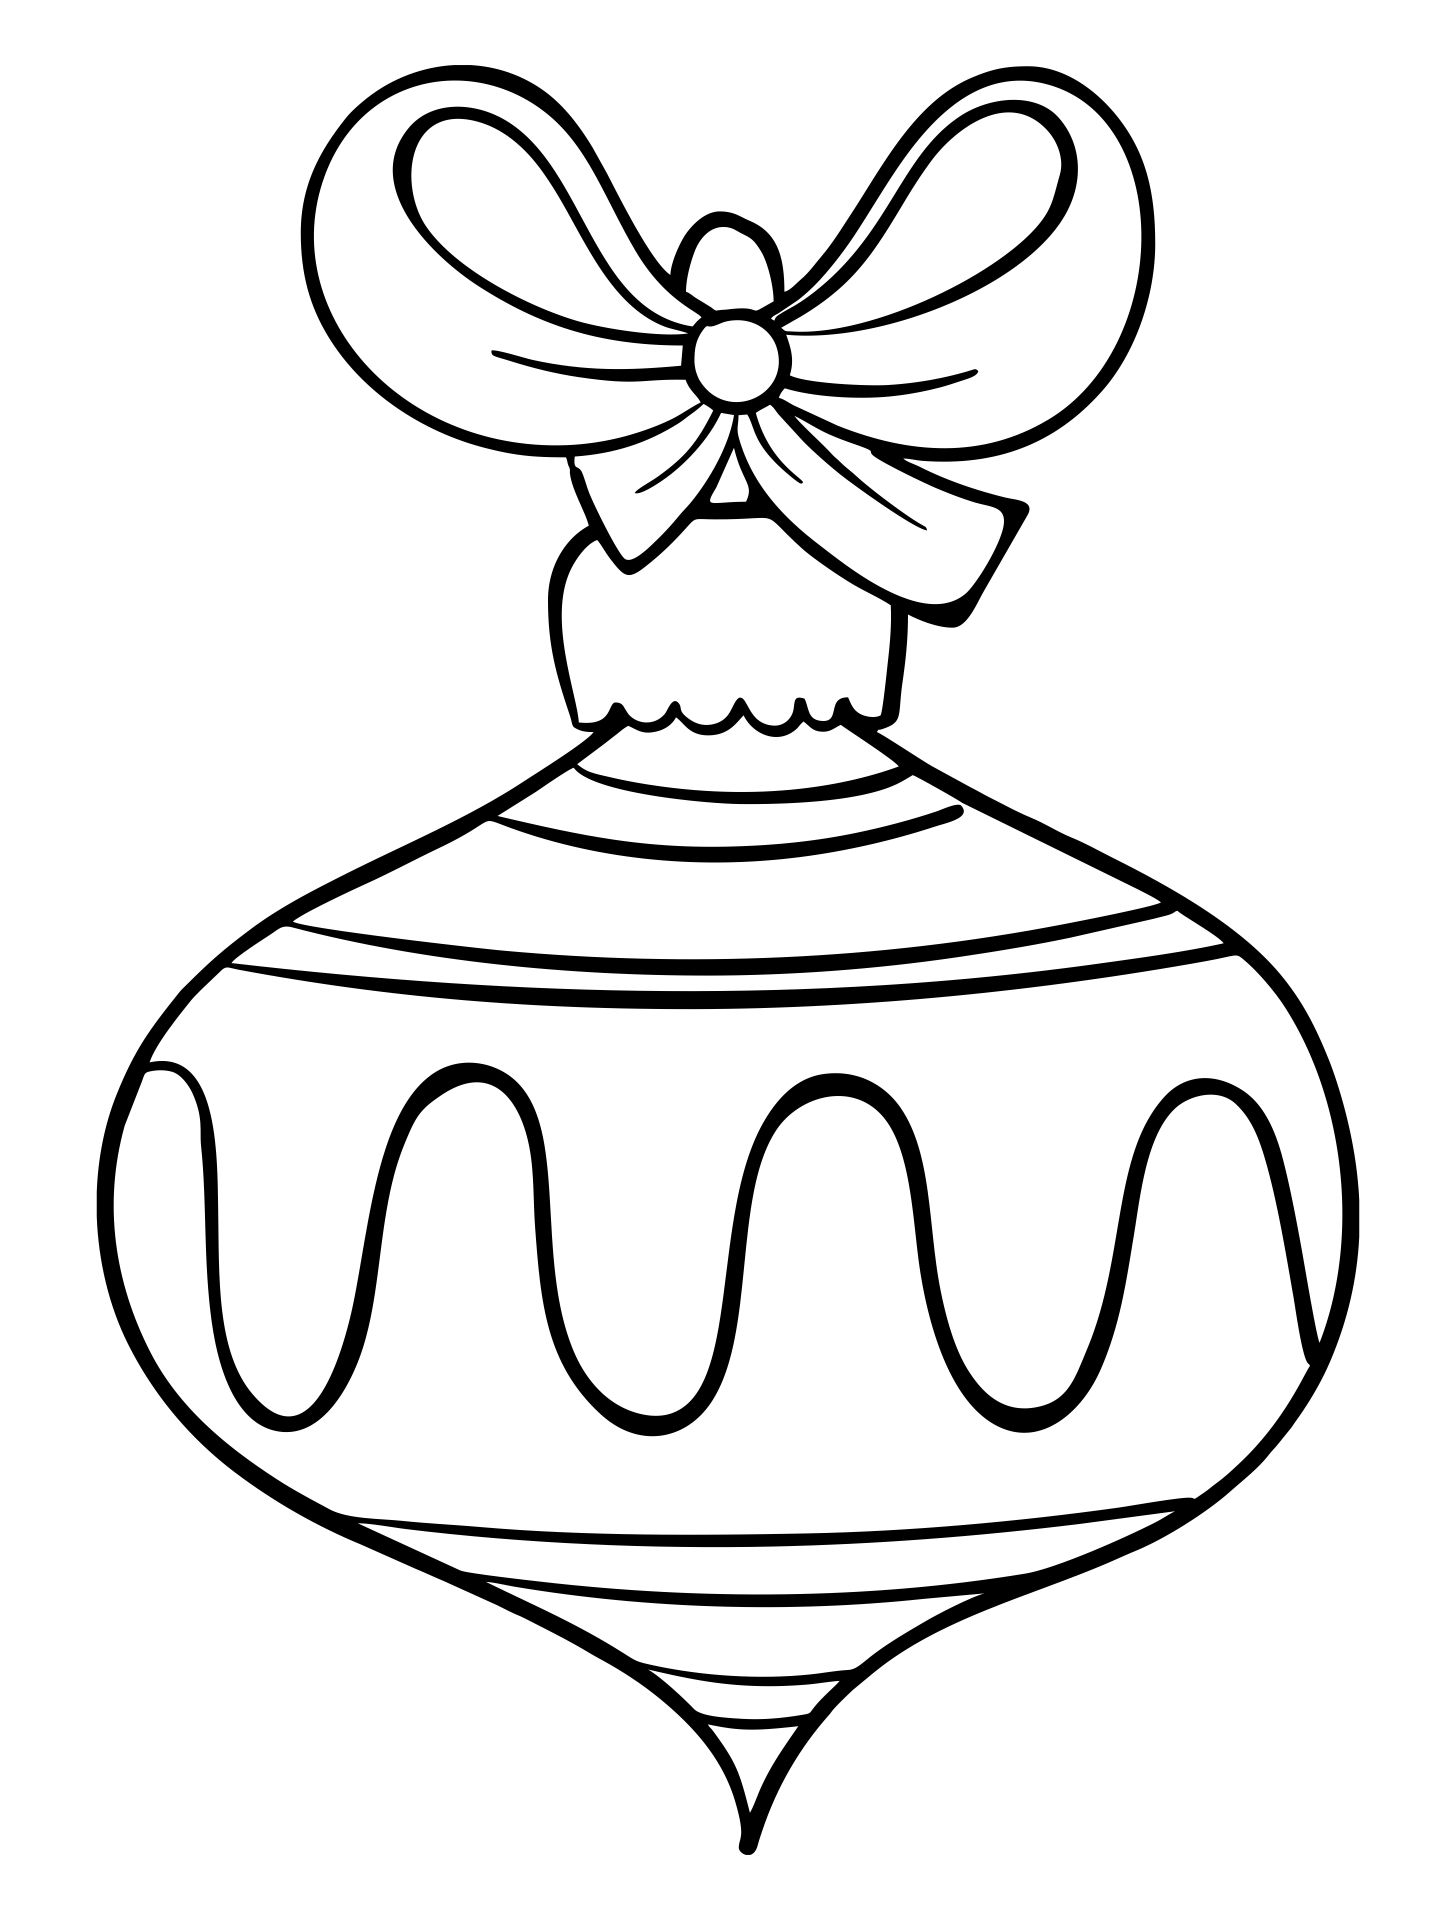 7 Best Free Christmas Printable Ornament Coloring Pages Printablee Com